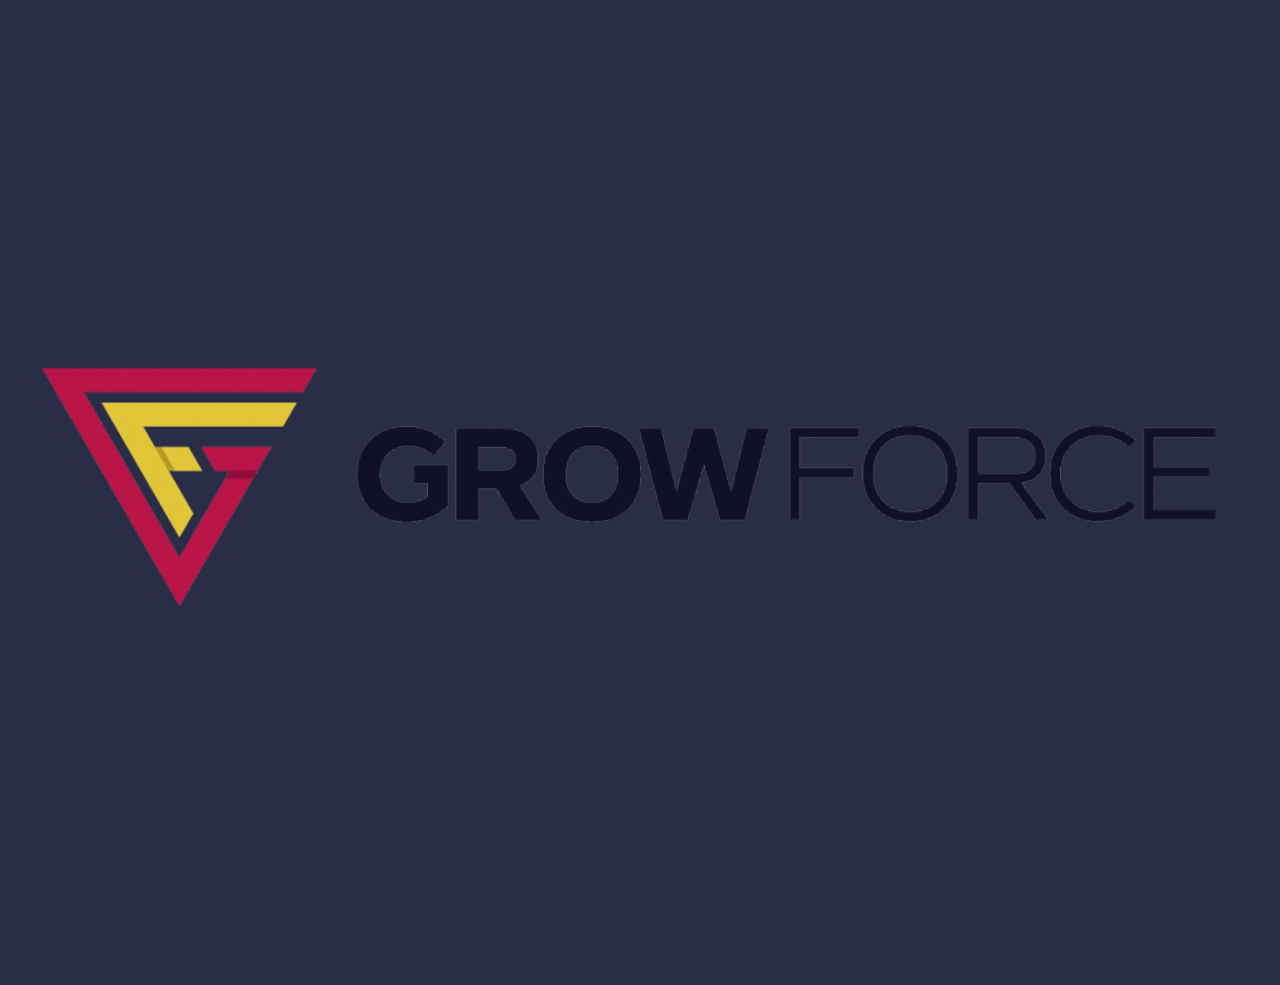 Growforce